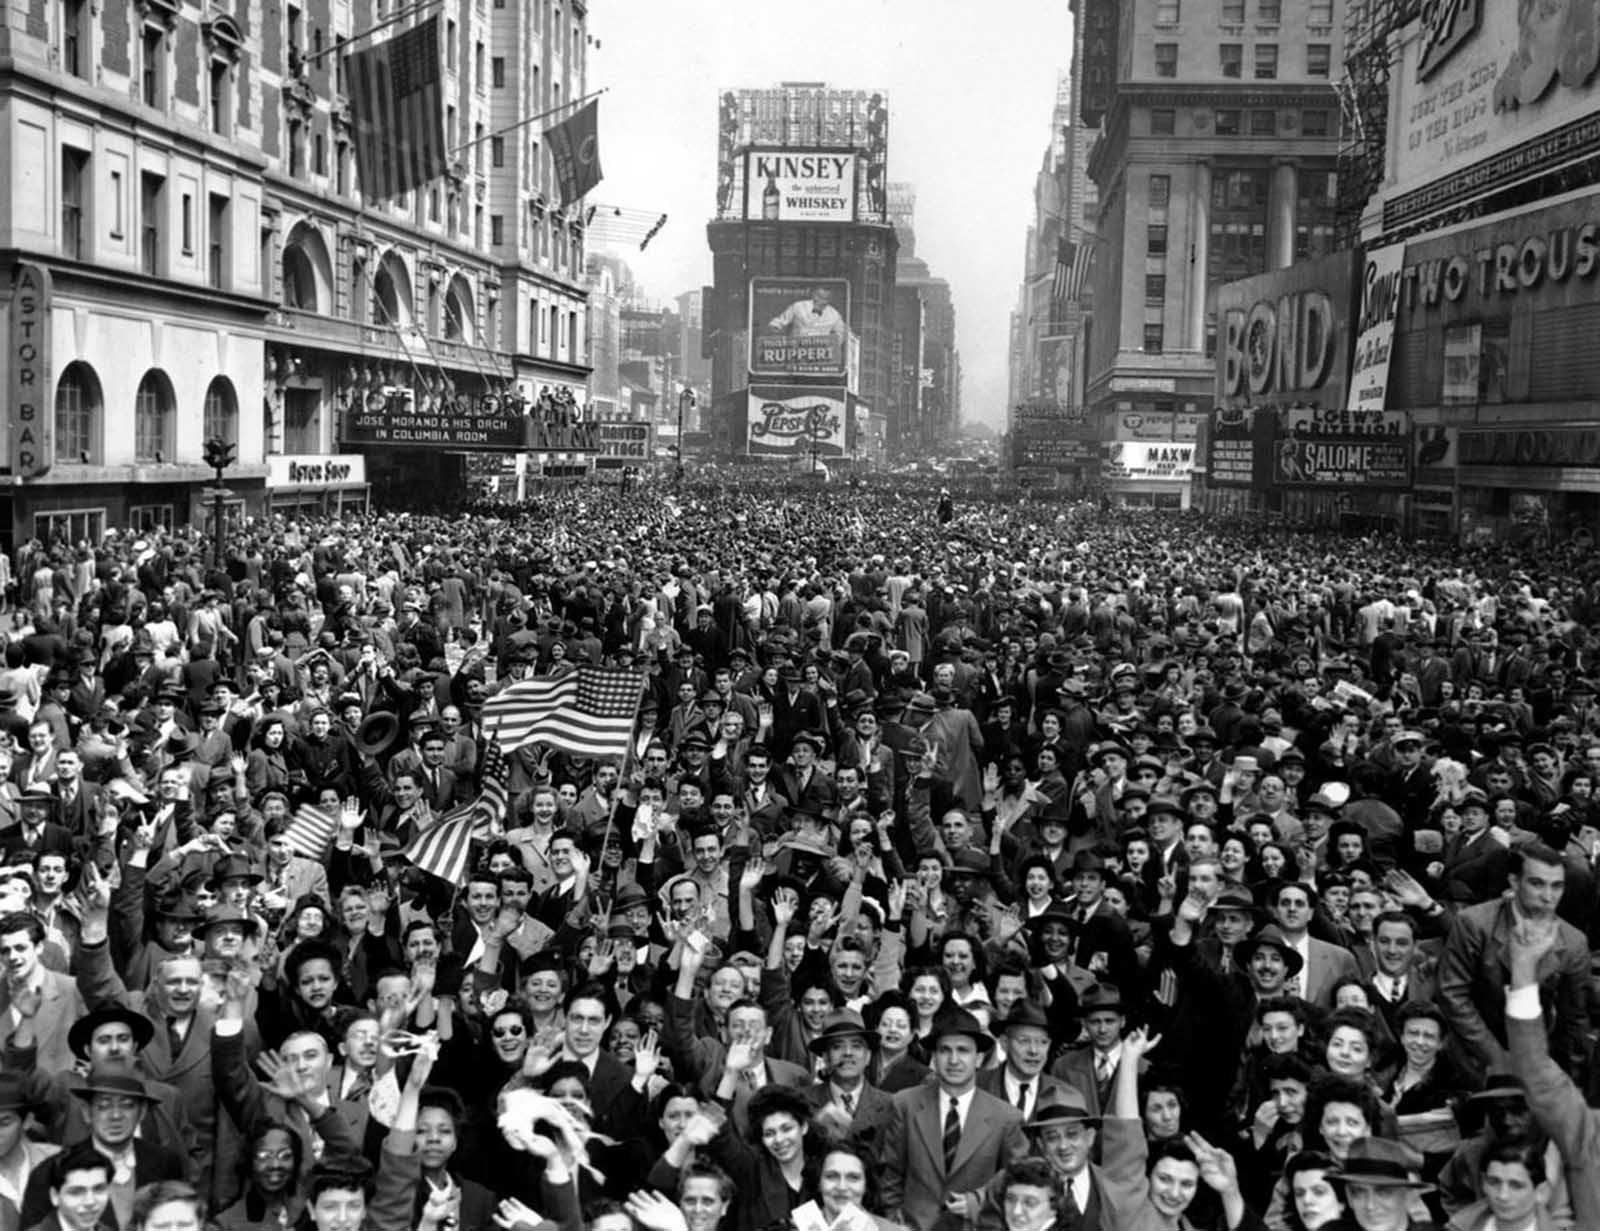 Looking north from 44th Street, New York's Times Square is packed Monday, May 7, 1945, with crowds celebrating the news of Germany's unconditional surrender in World War II.